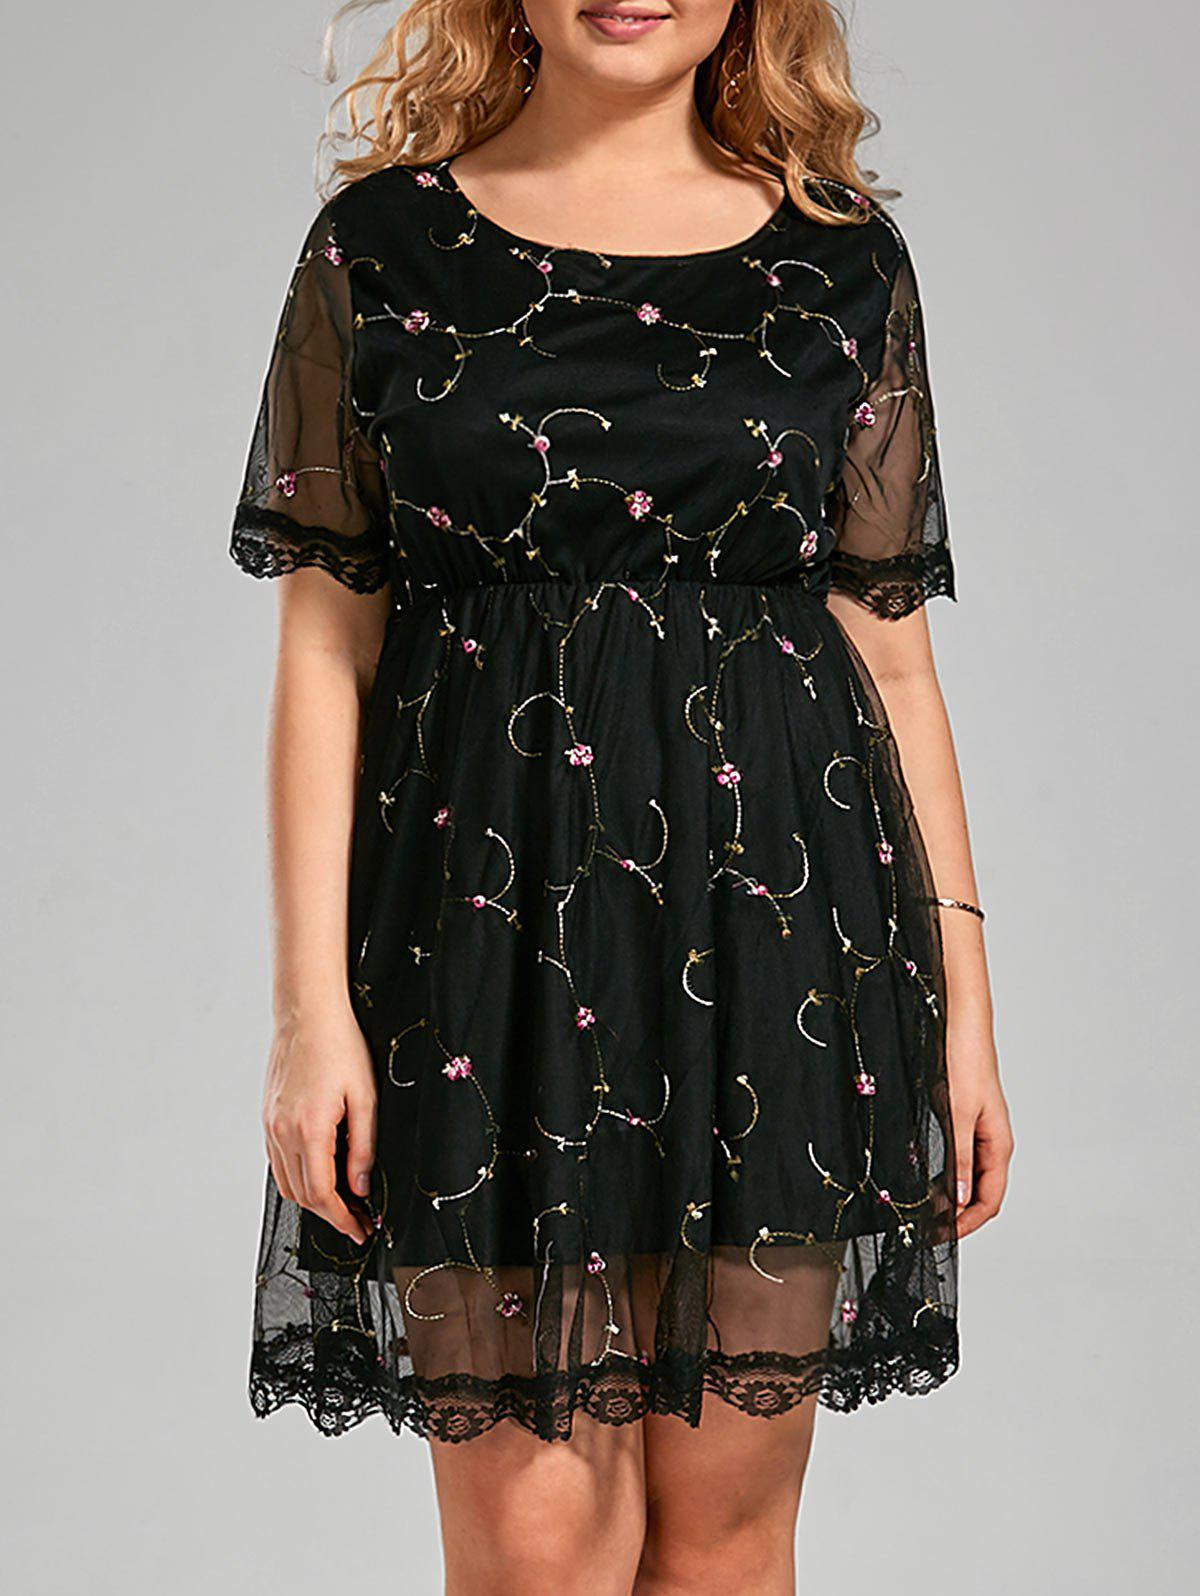 2018 Plus Size Embroidered Semi Sheer Dress with Lace Trim BLACK ...